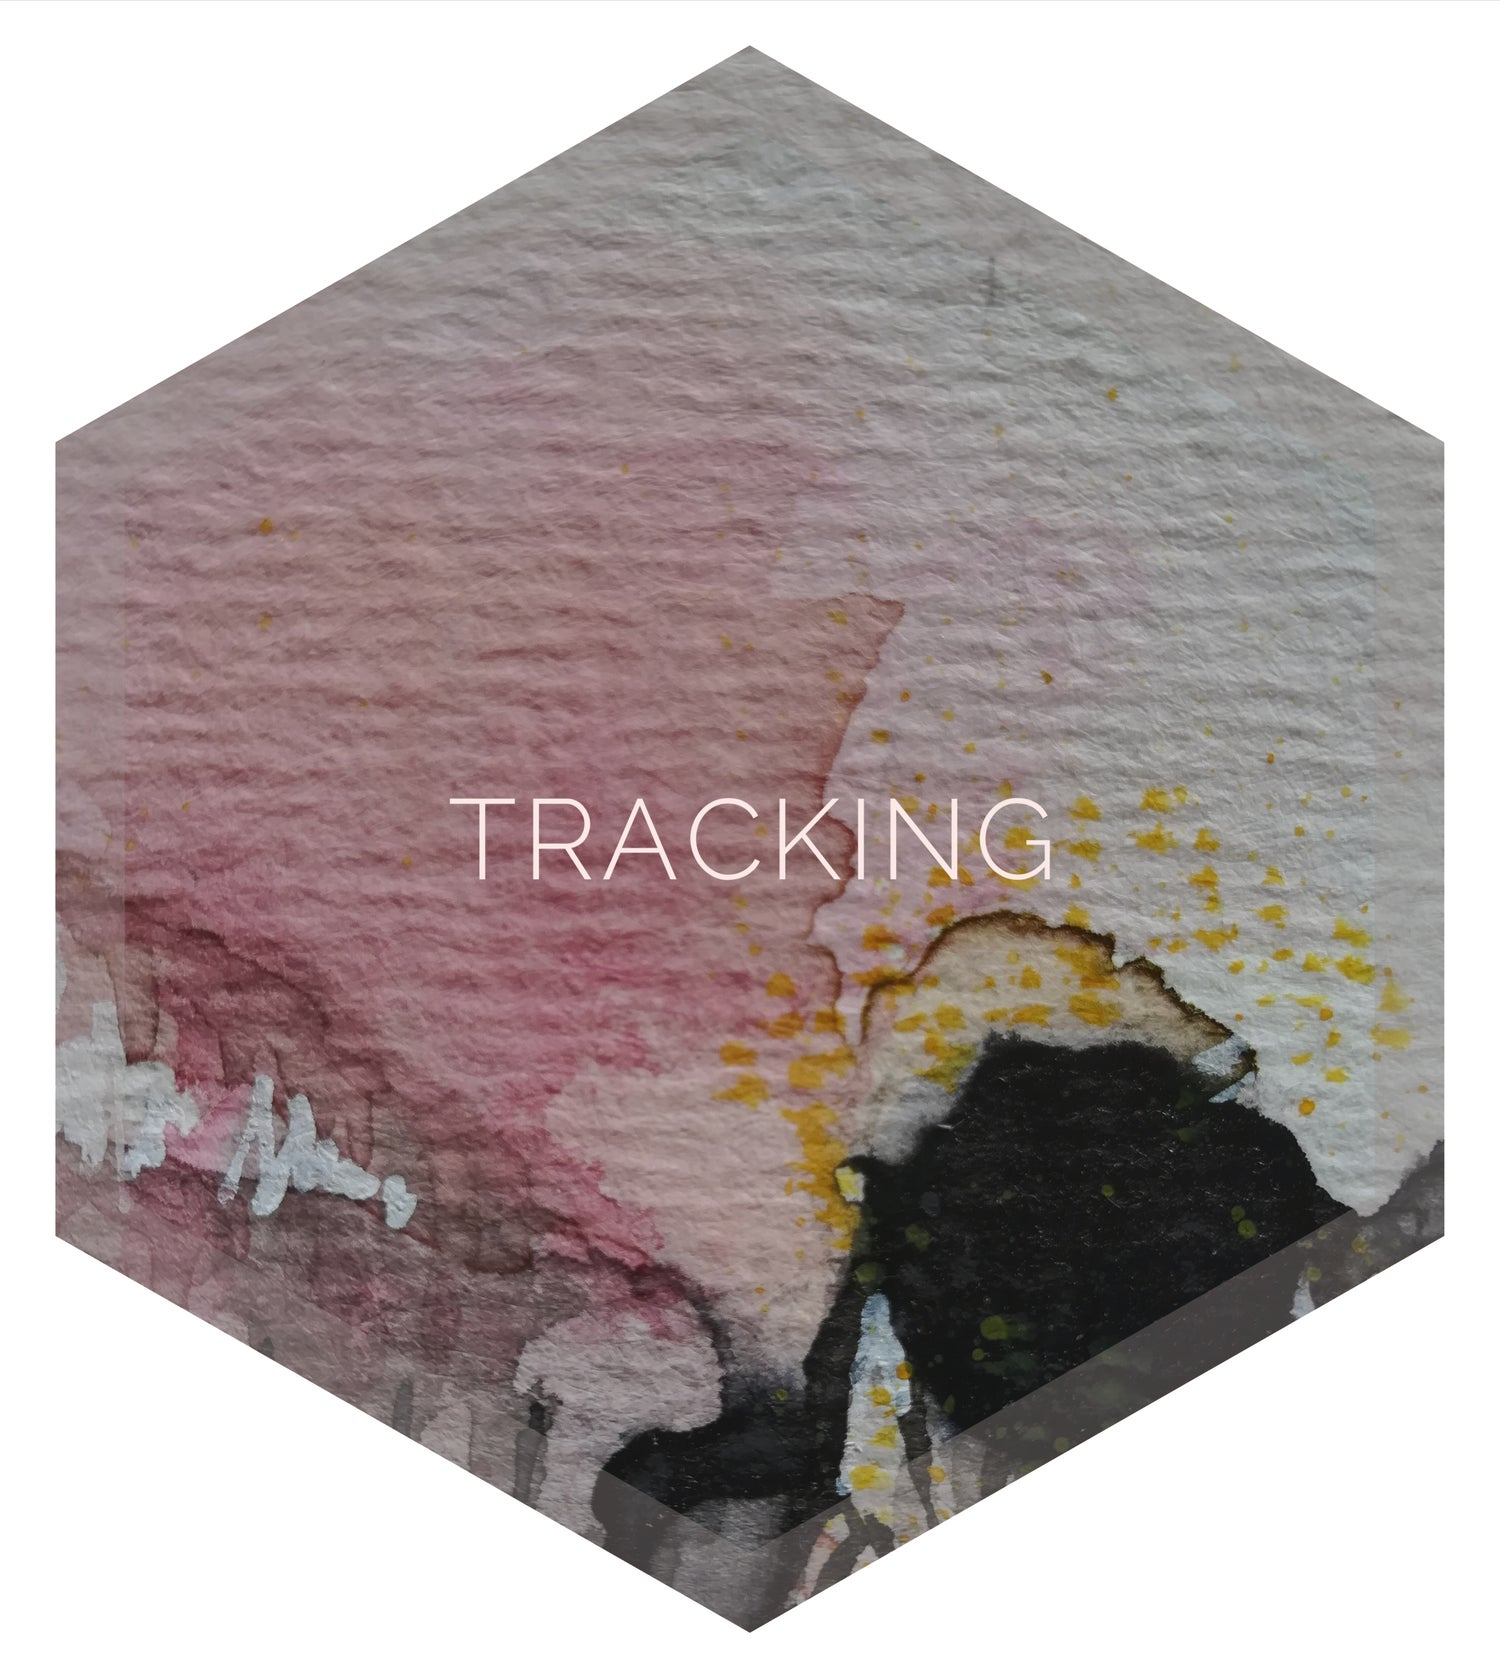 Image of Tracking on your purchase